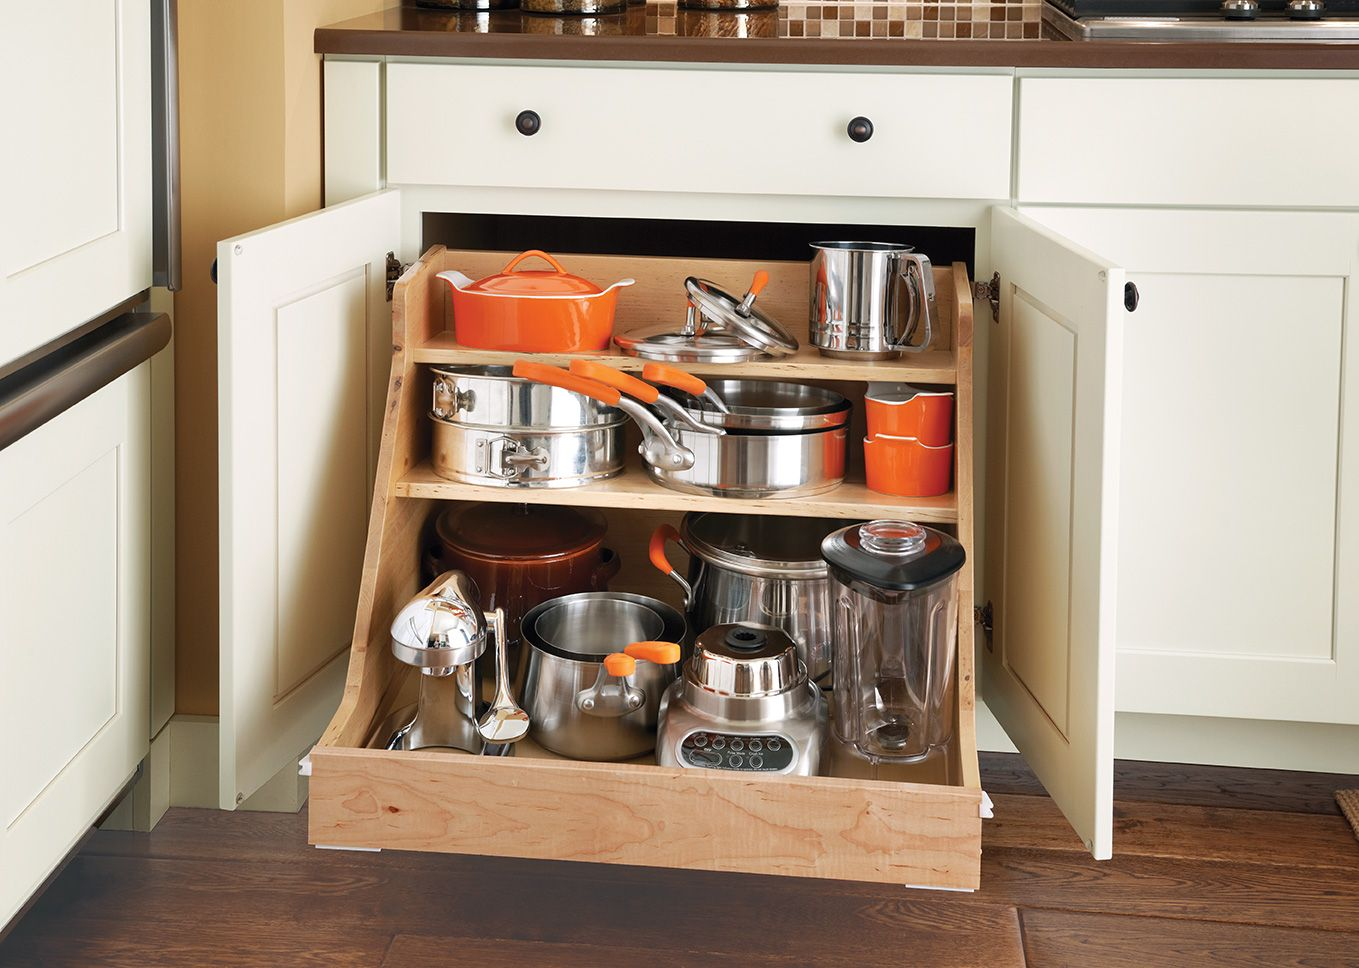 Base Pot And Pan Organizer Forget Clanking Through All Your Cookware Use This Easy Roll Out Organizer Pan Organization Home Depot Cabinets Kitchen Cabinetry